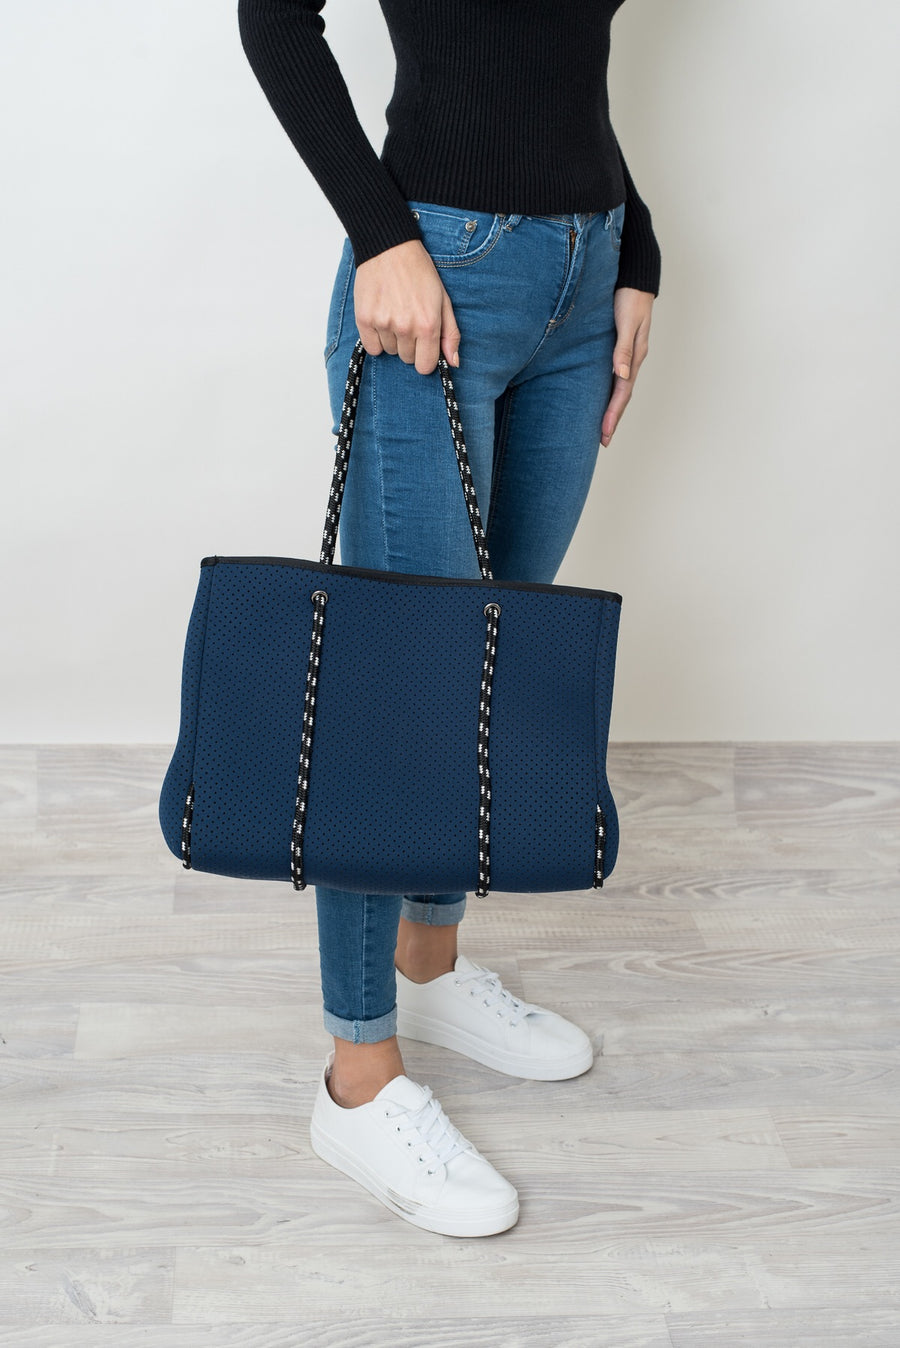 ROZA NEOPRENE TOTE BAG - NAVY